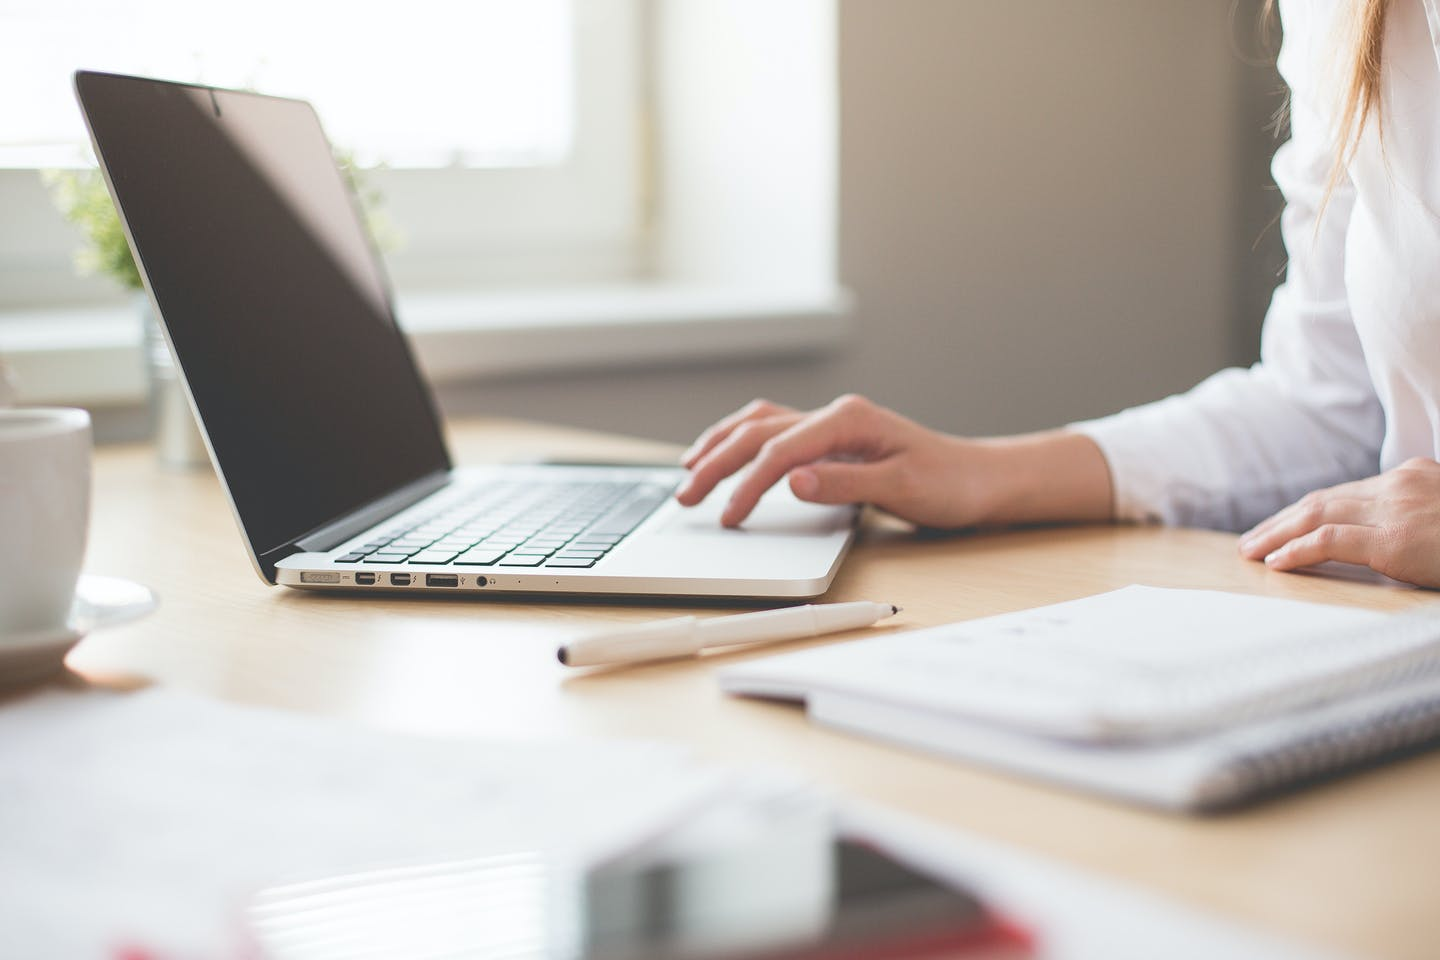 Woman working on her laptop possibly doing sustainability reporting